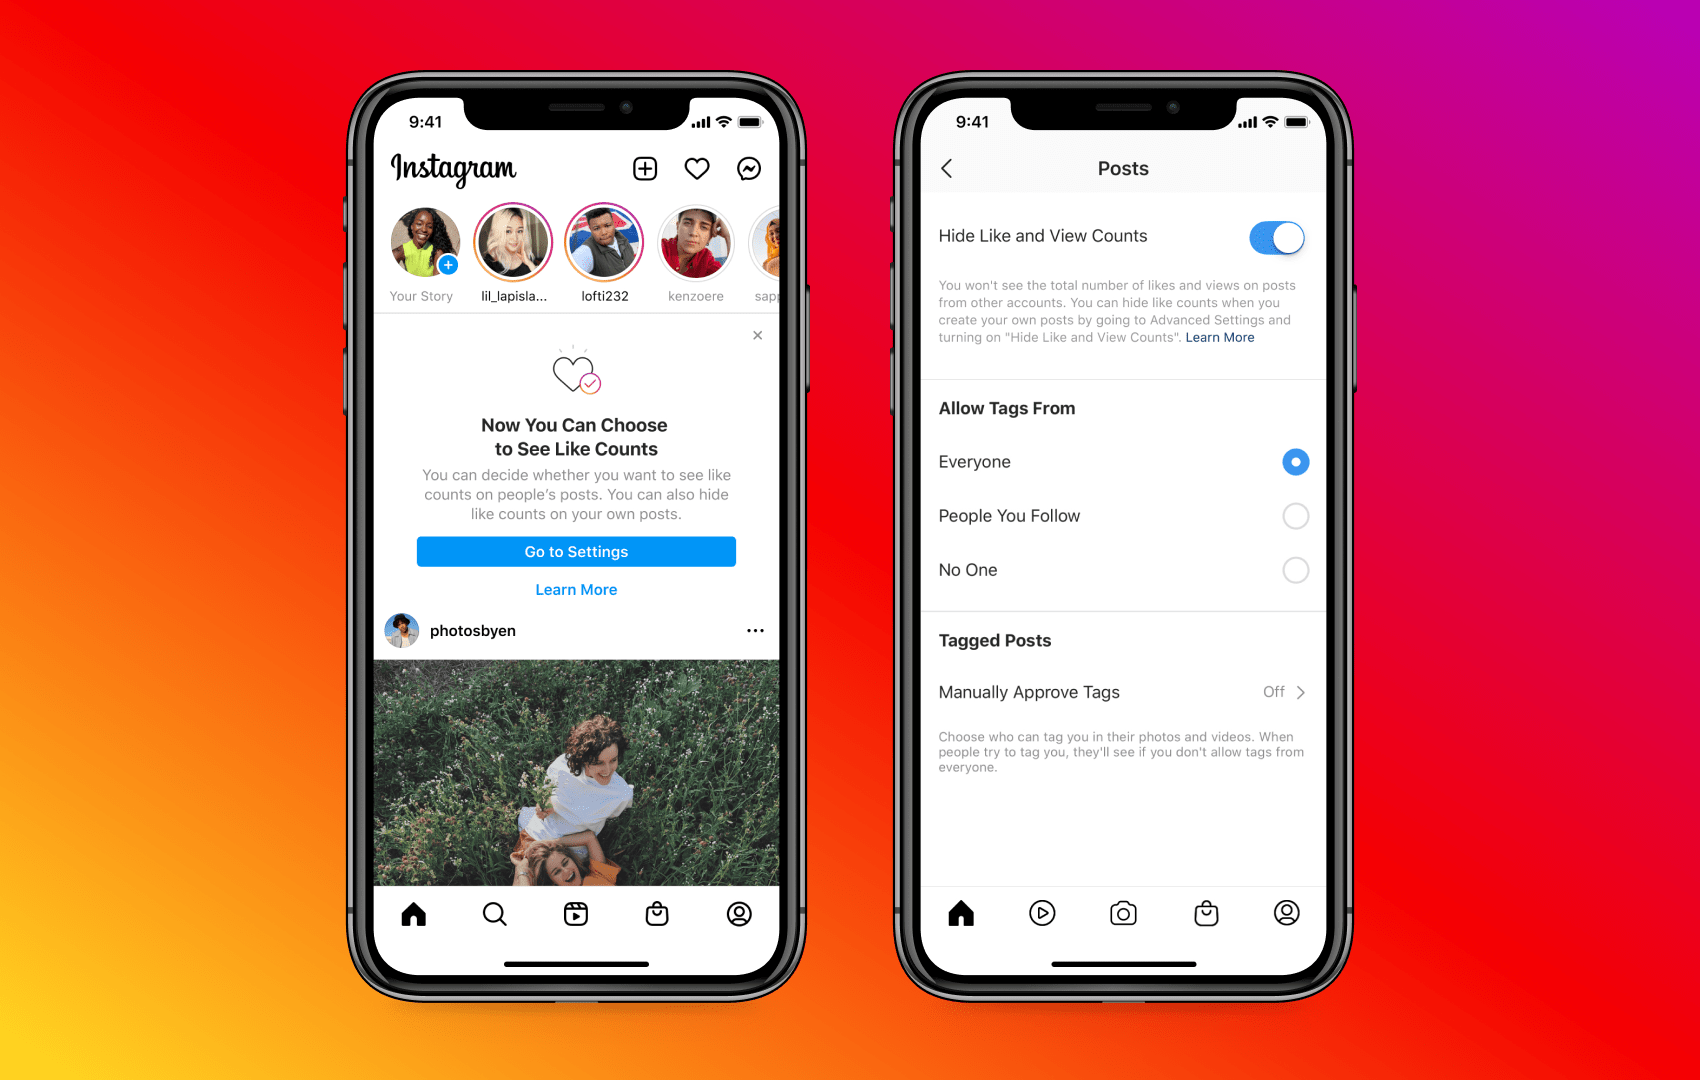 A promotional image from Instagram showing the option to hide like and view counts on posts from other accounts in the iPhone app